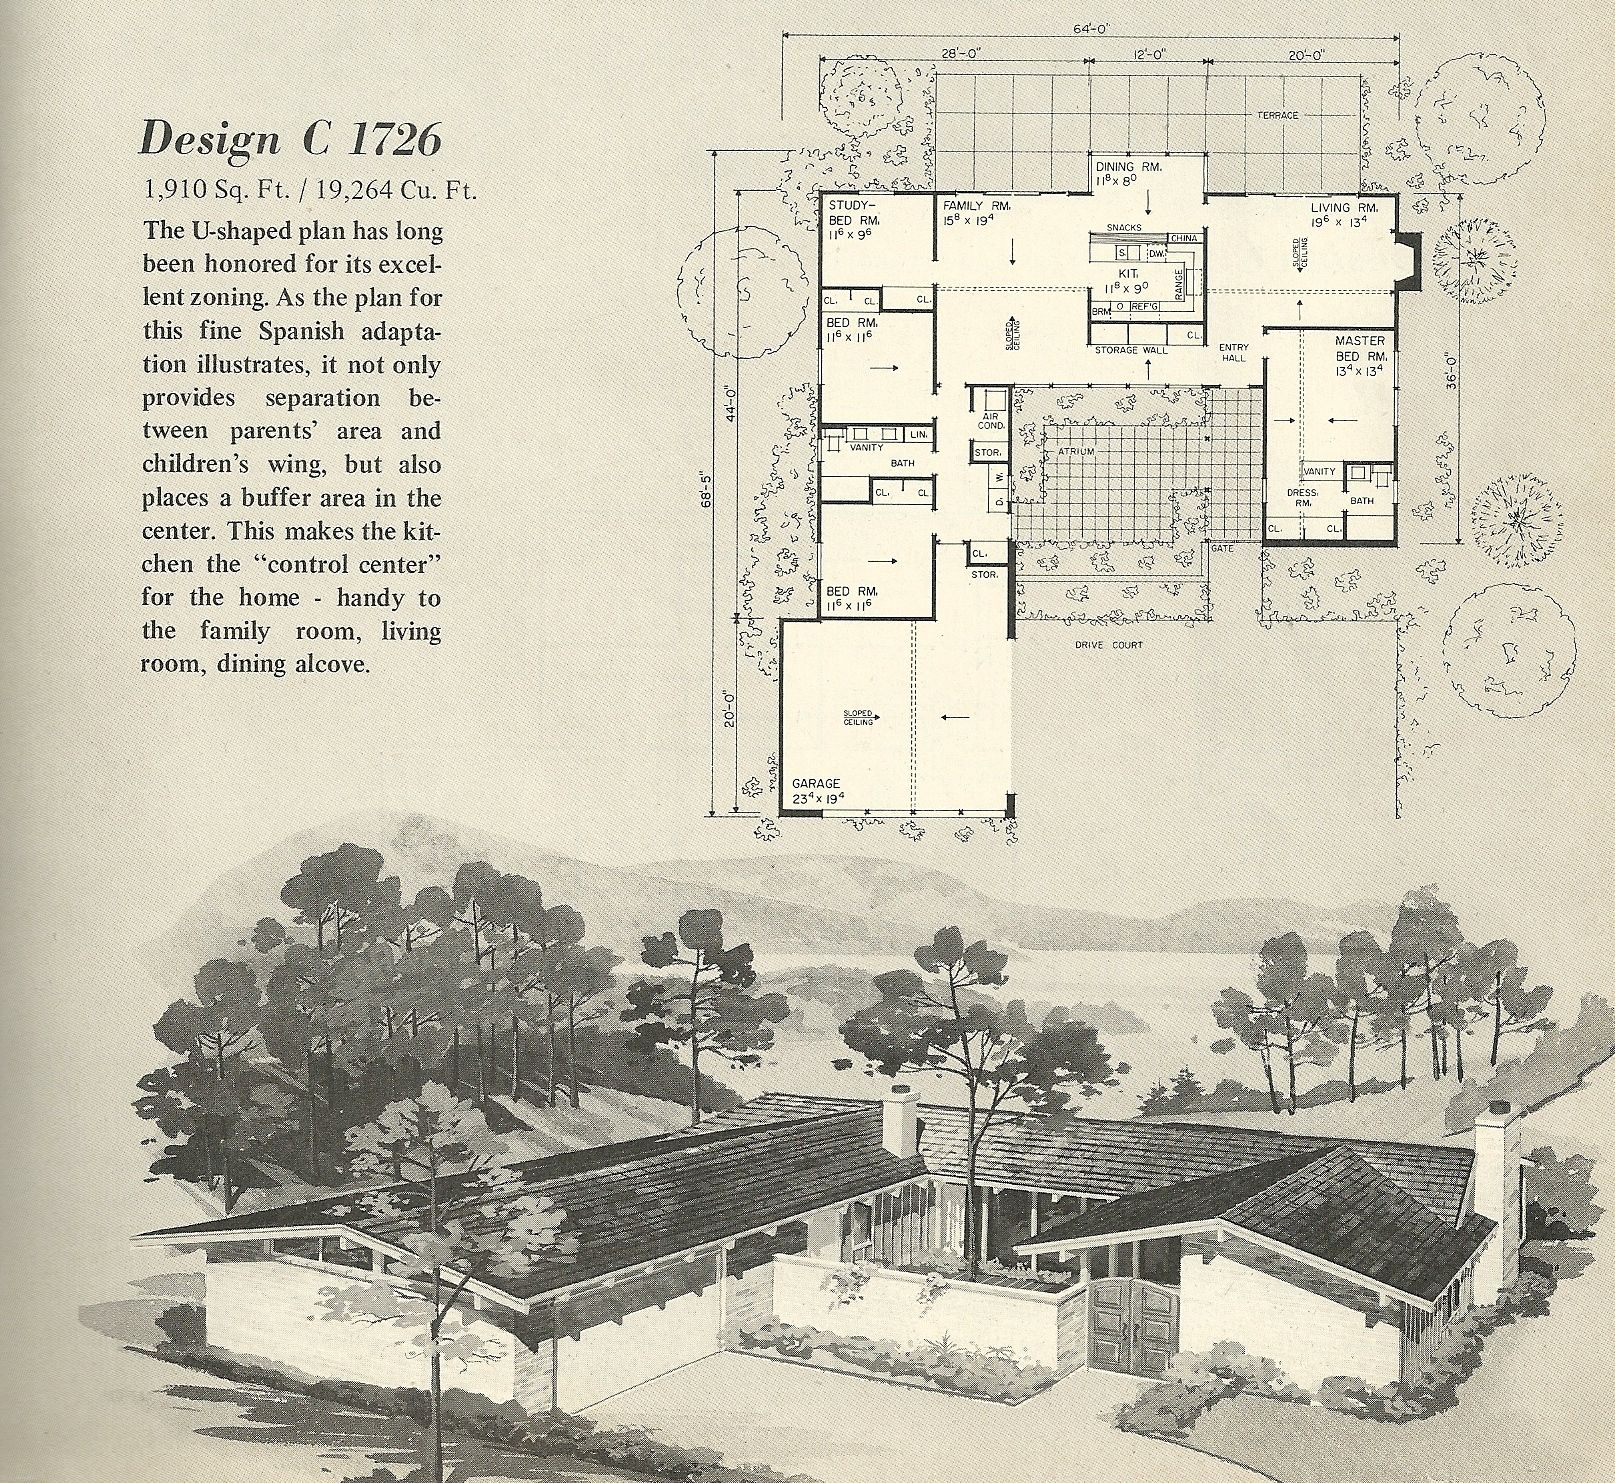 Vintage house plan vintage house plans 1960s spanish style and mid century modern